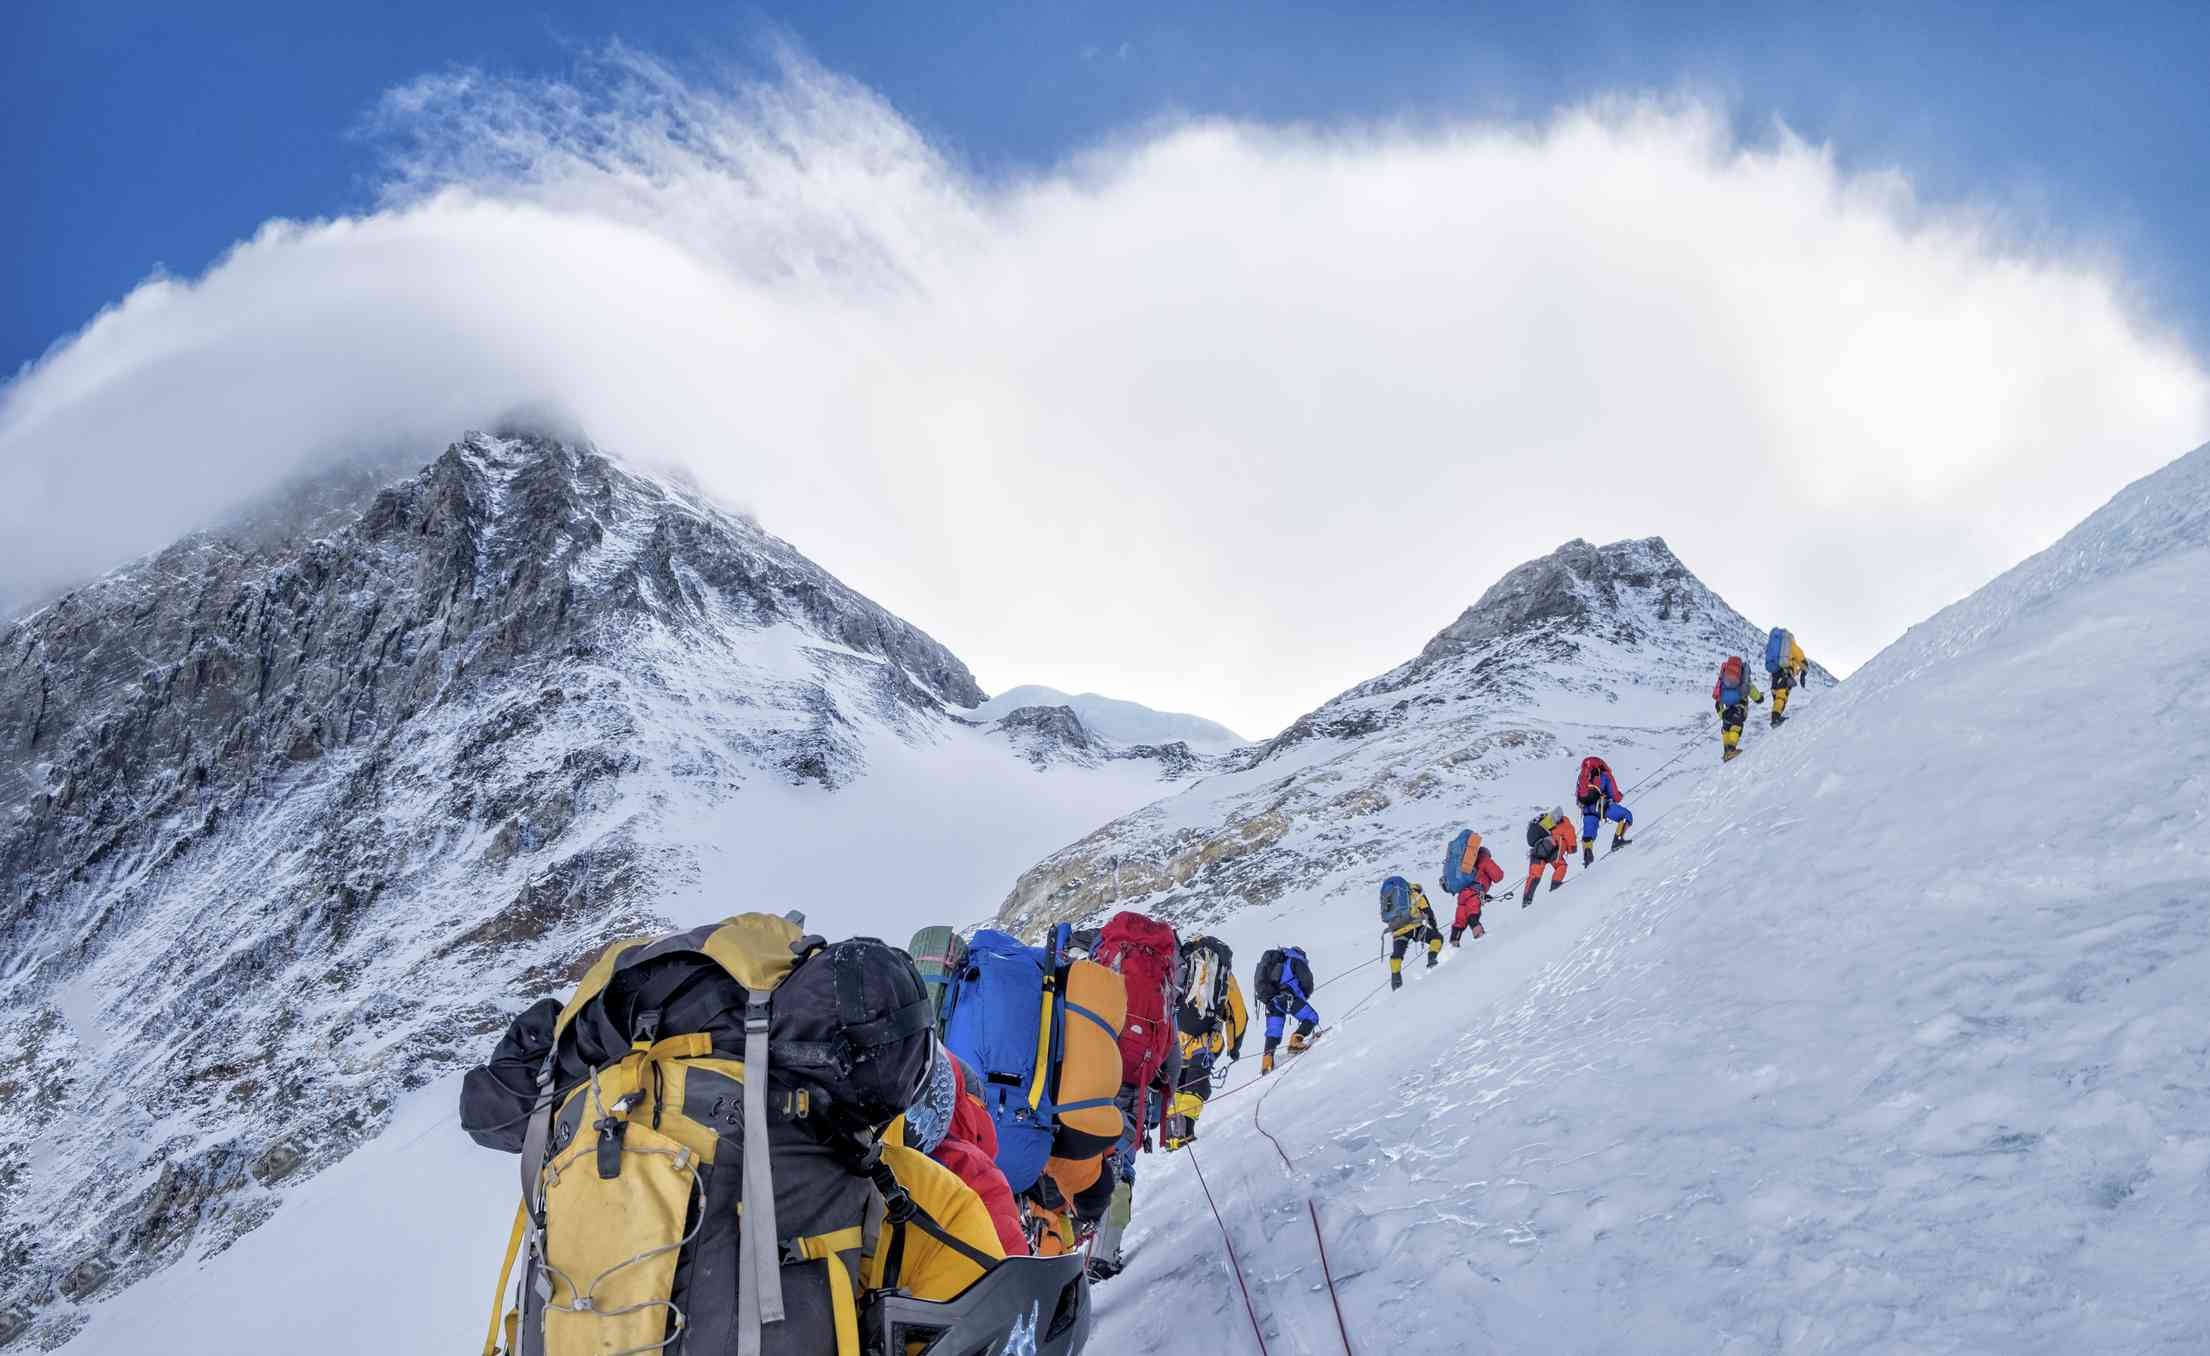 A roped team of climbers on Mount Everest